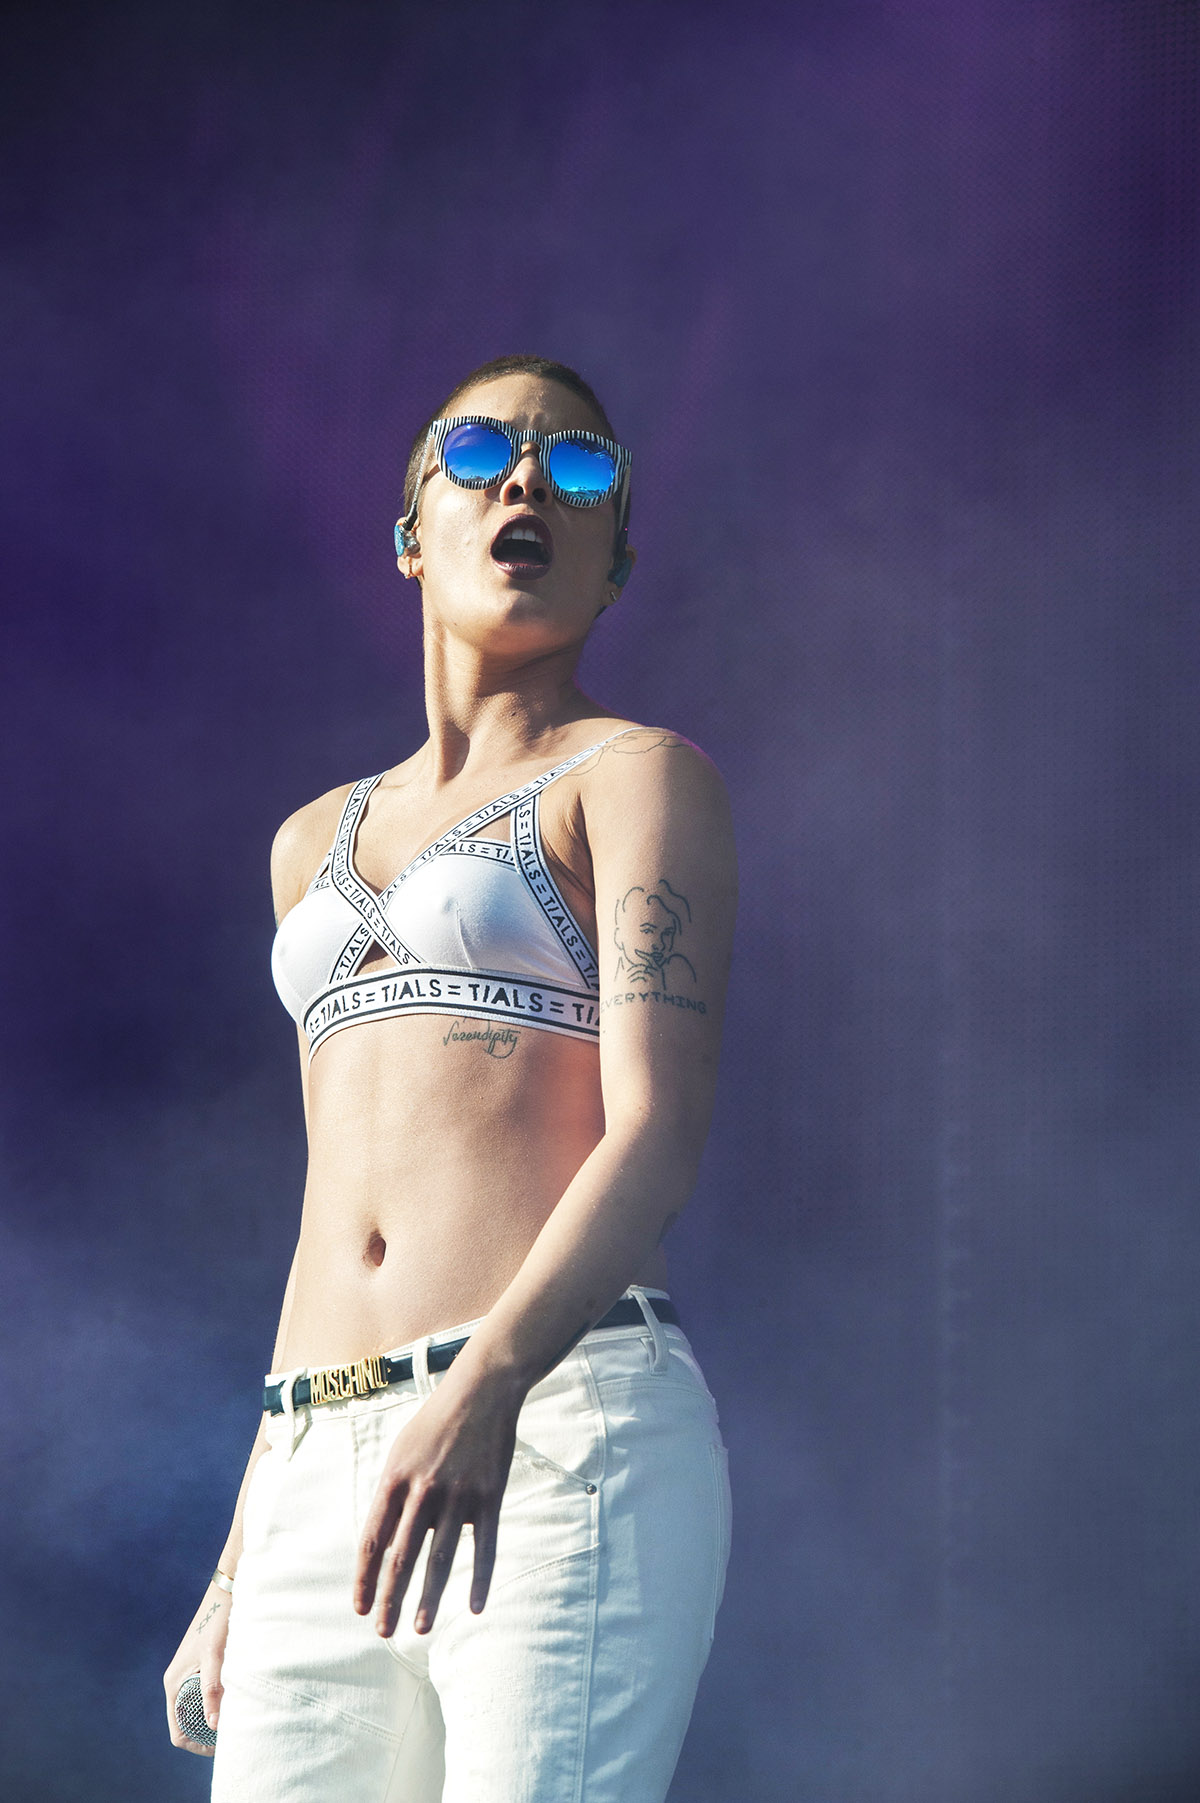 Making her Australian debut, indie pop singer Halsey showcased tracks off her album 'Badlands' on evening two of the 2015 Falls Festival - image courtesy of Kirsty Umback.